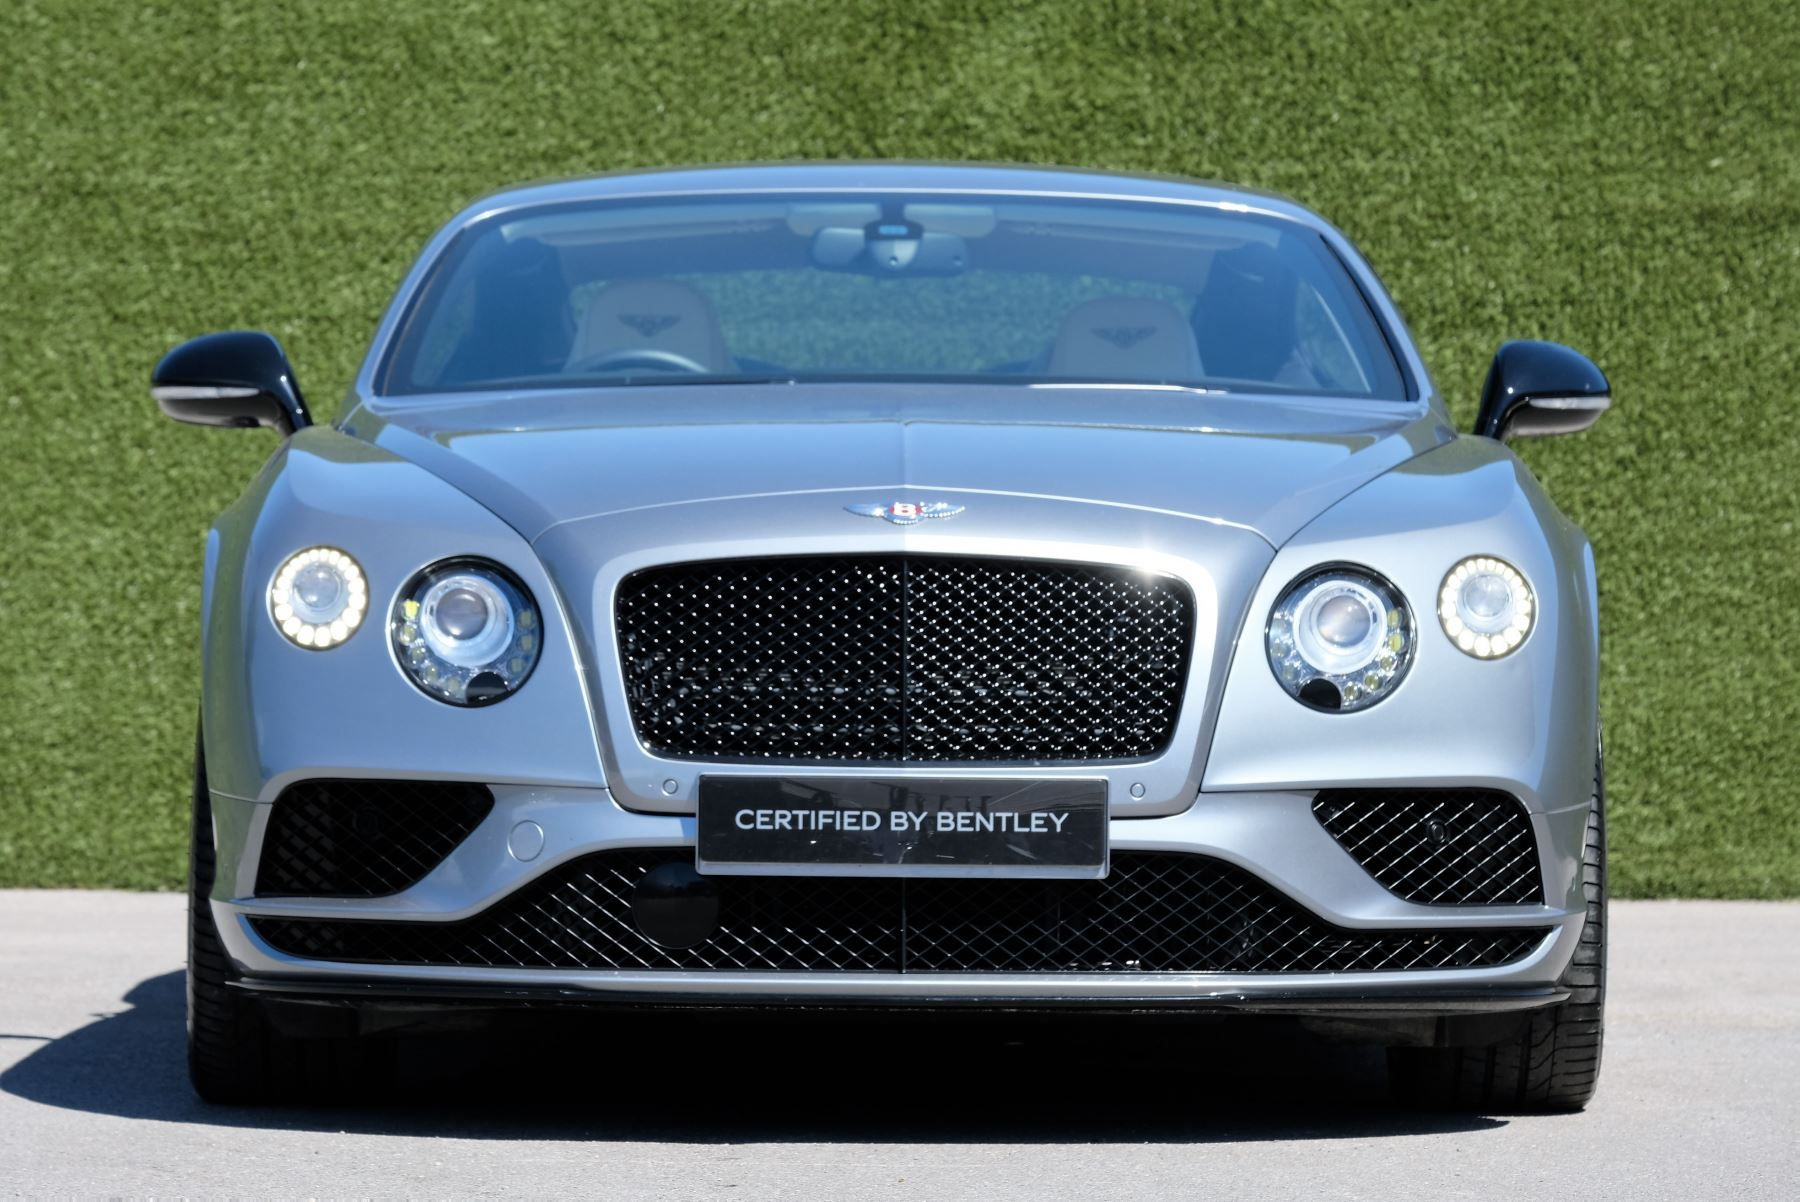 Bentley Continental GT V8 S Coupe 4.0 Mulliner Driving Specification 2dr image 2